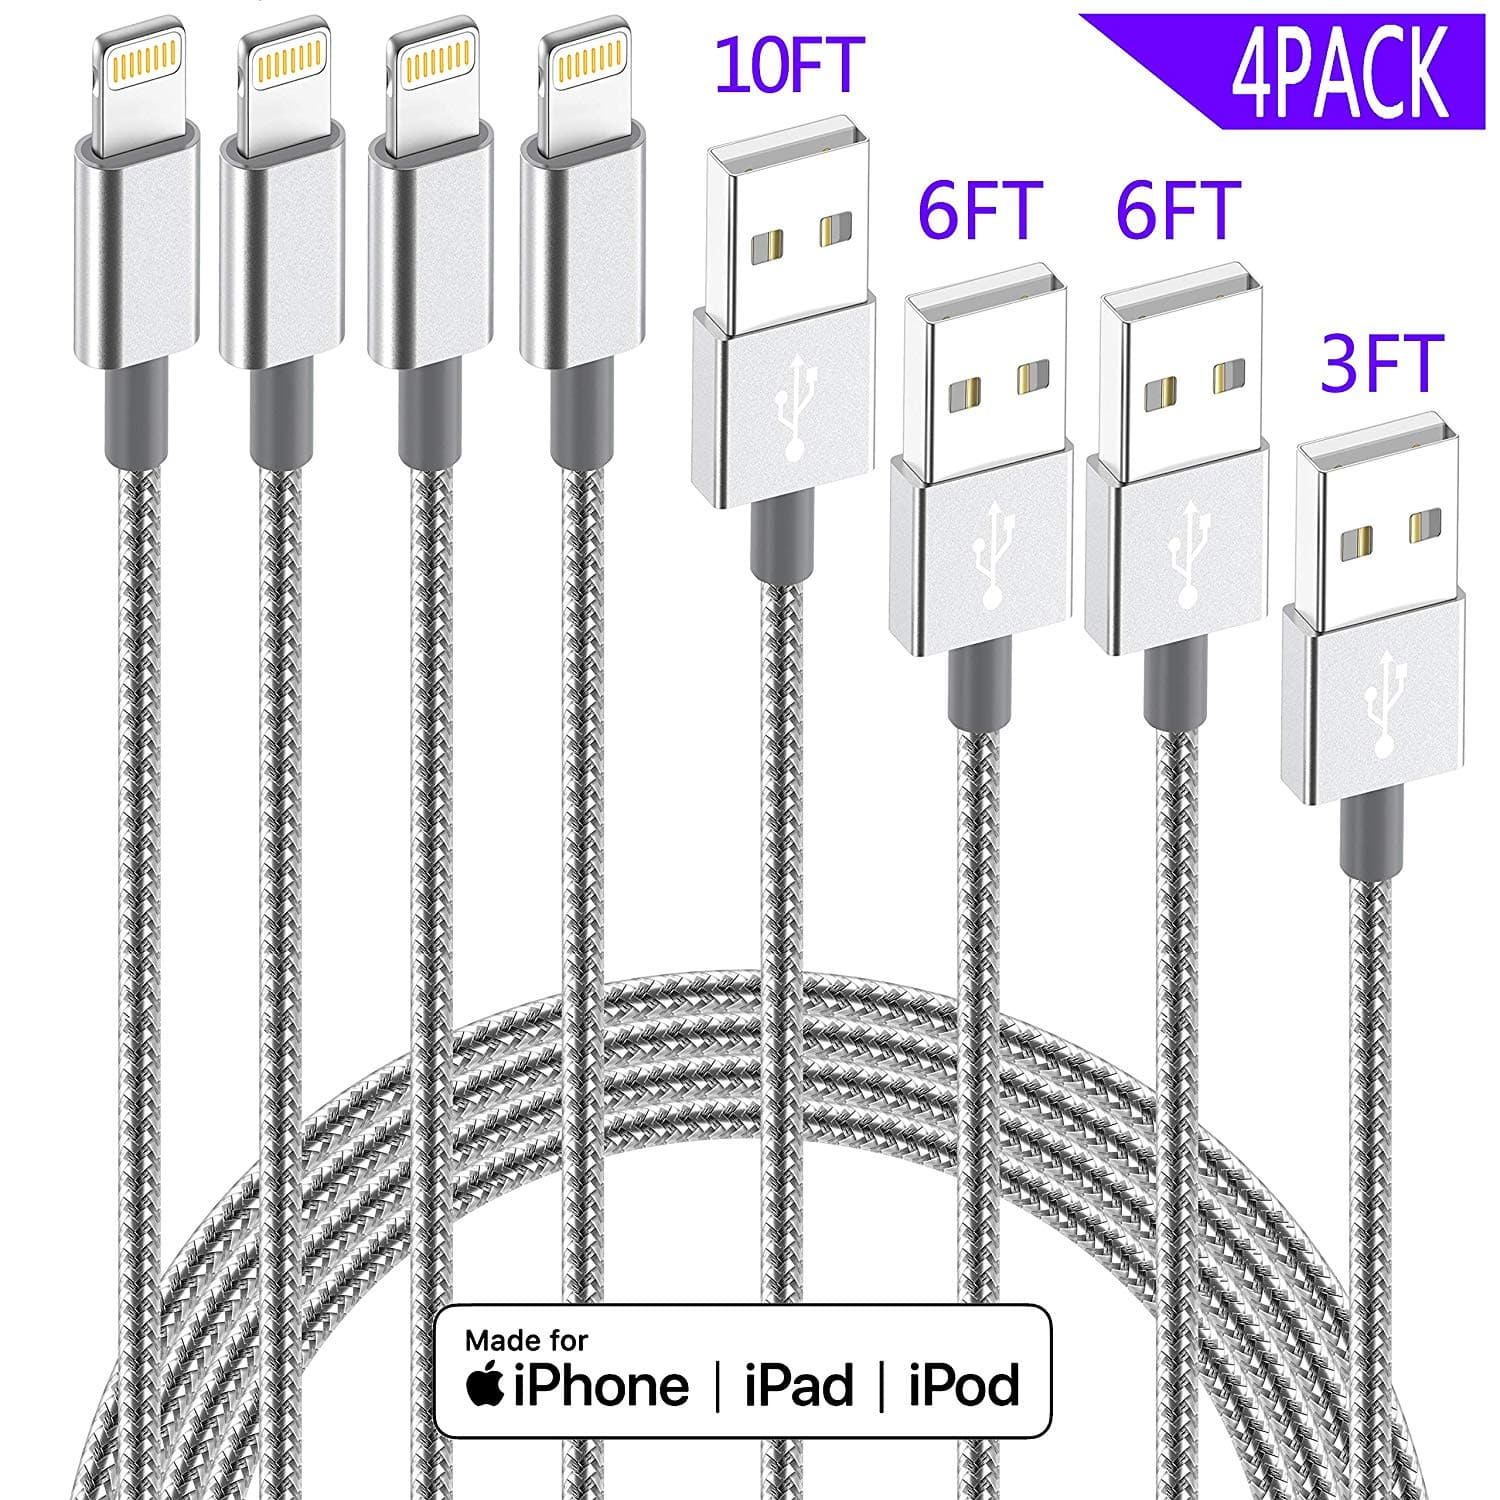 IDiSON 4Pack(10ft 6ft 6ft 3ft) iPhone Lightning Cable Apple MFi Certified $8.84 AC